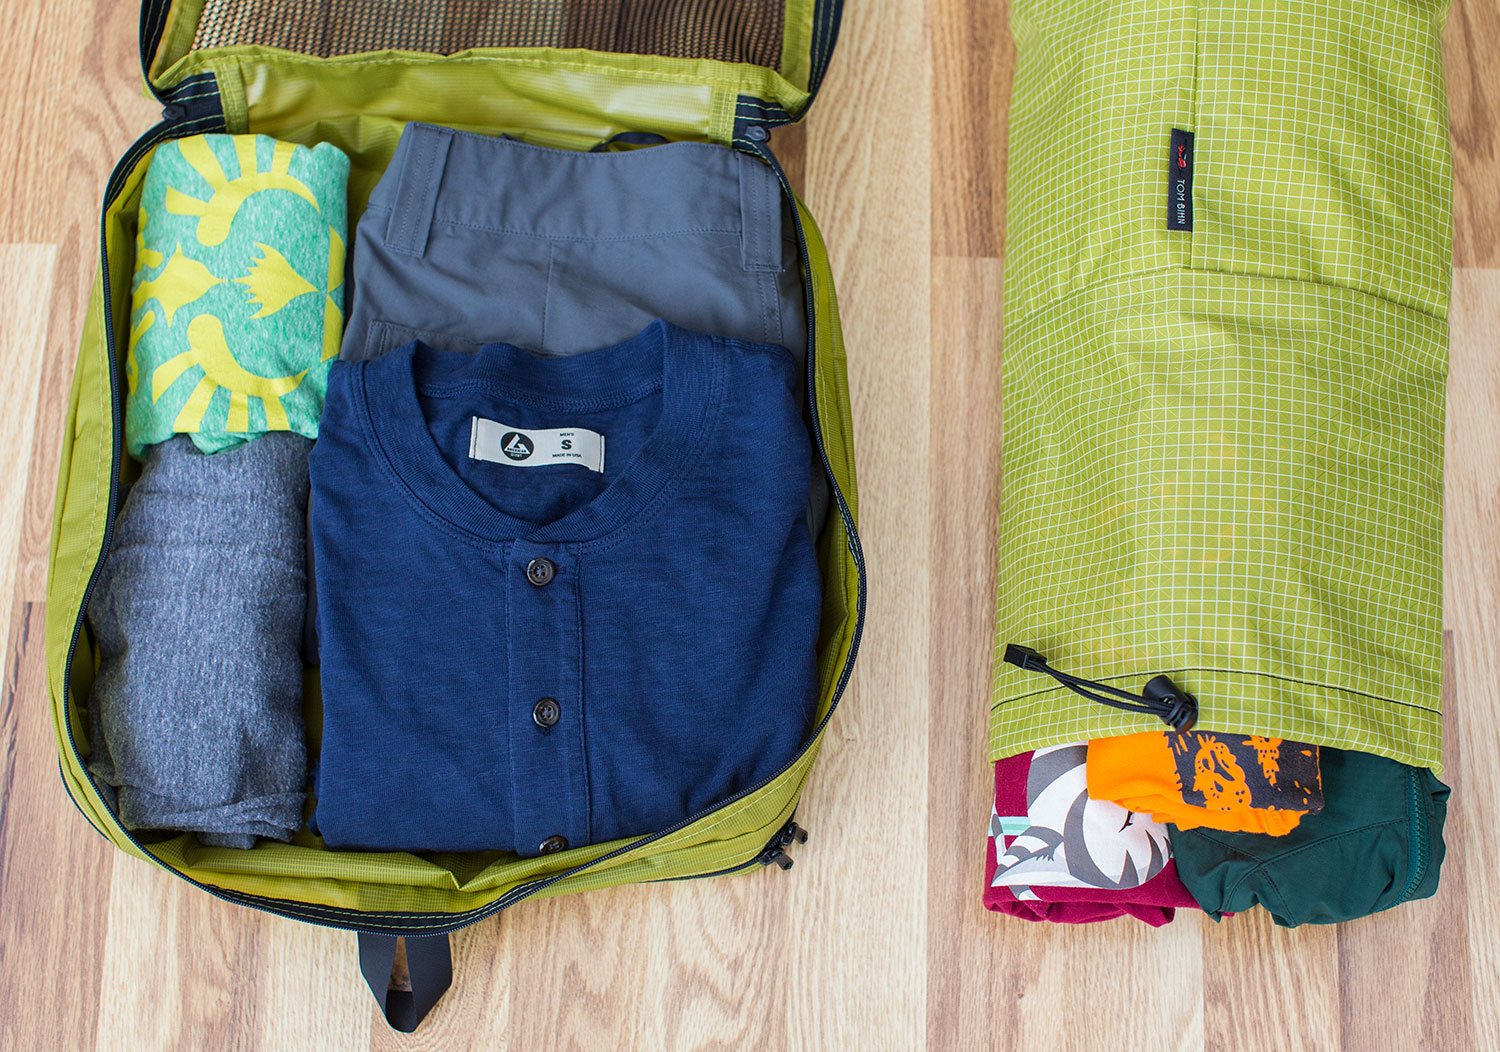 Laundry Packing Cube and the Laundry Travel Stuff Sack